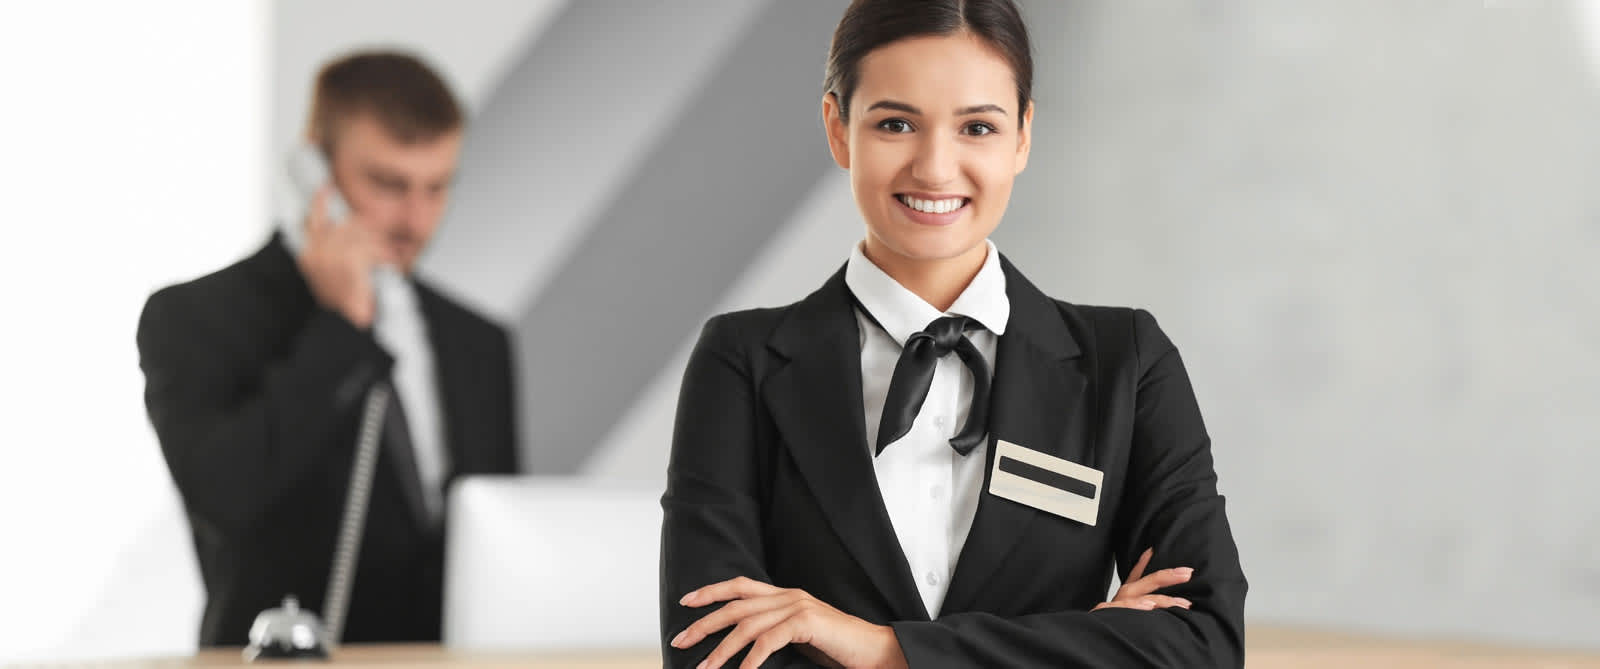 bigstock-Female-hotel-receptionist-at-w-208293751